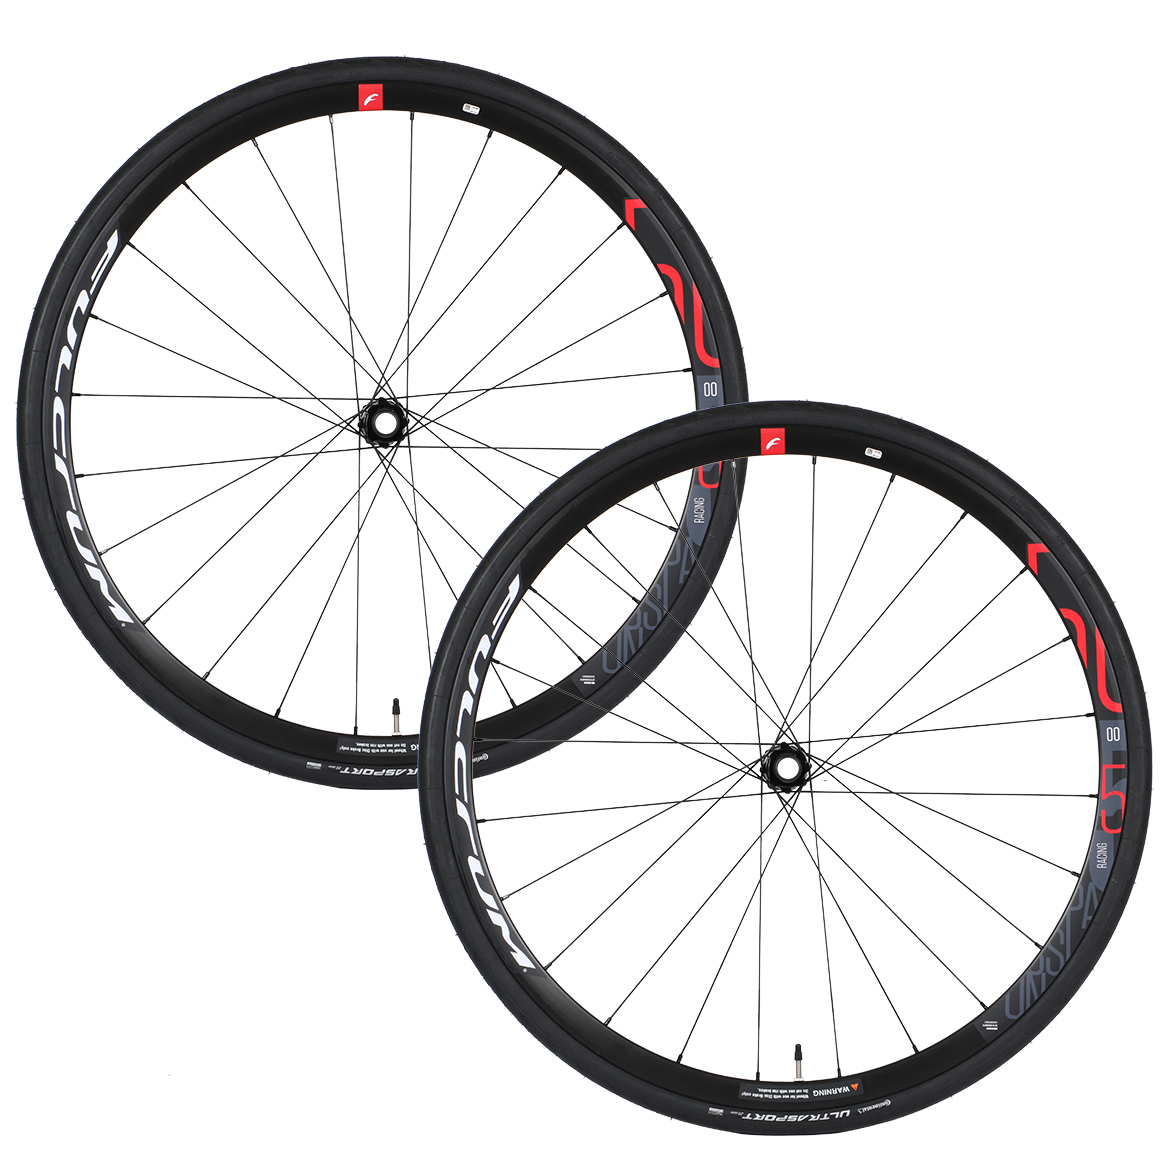 Fulcrum Racing 500 Disc Wheelset With Continental Ultra Sport Tyres